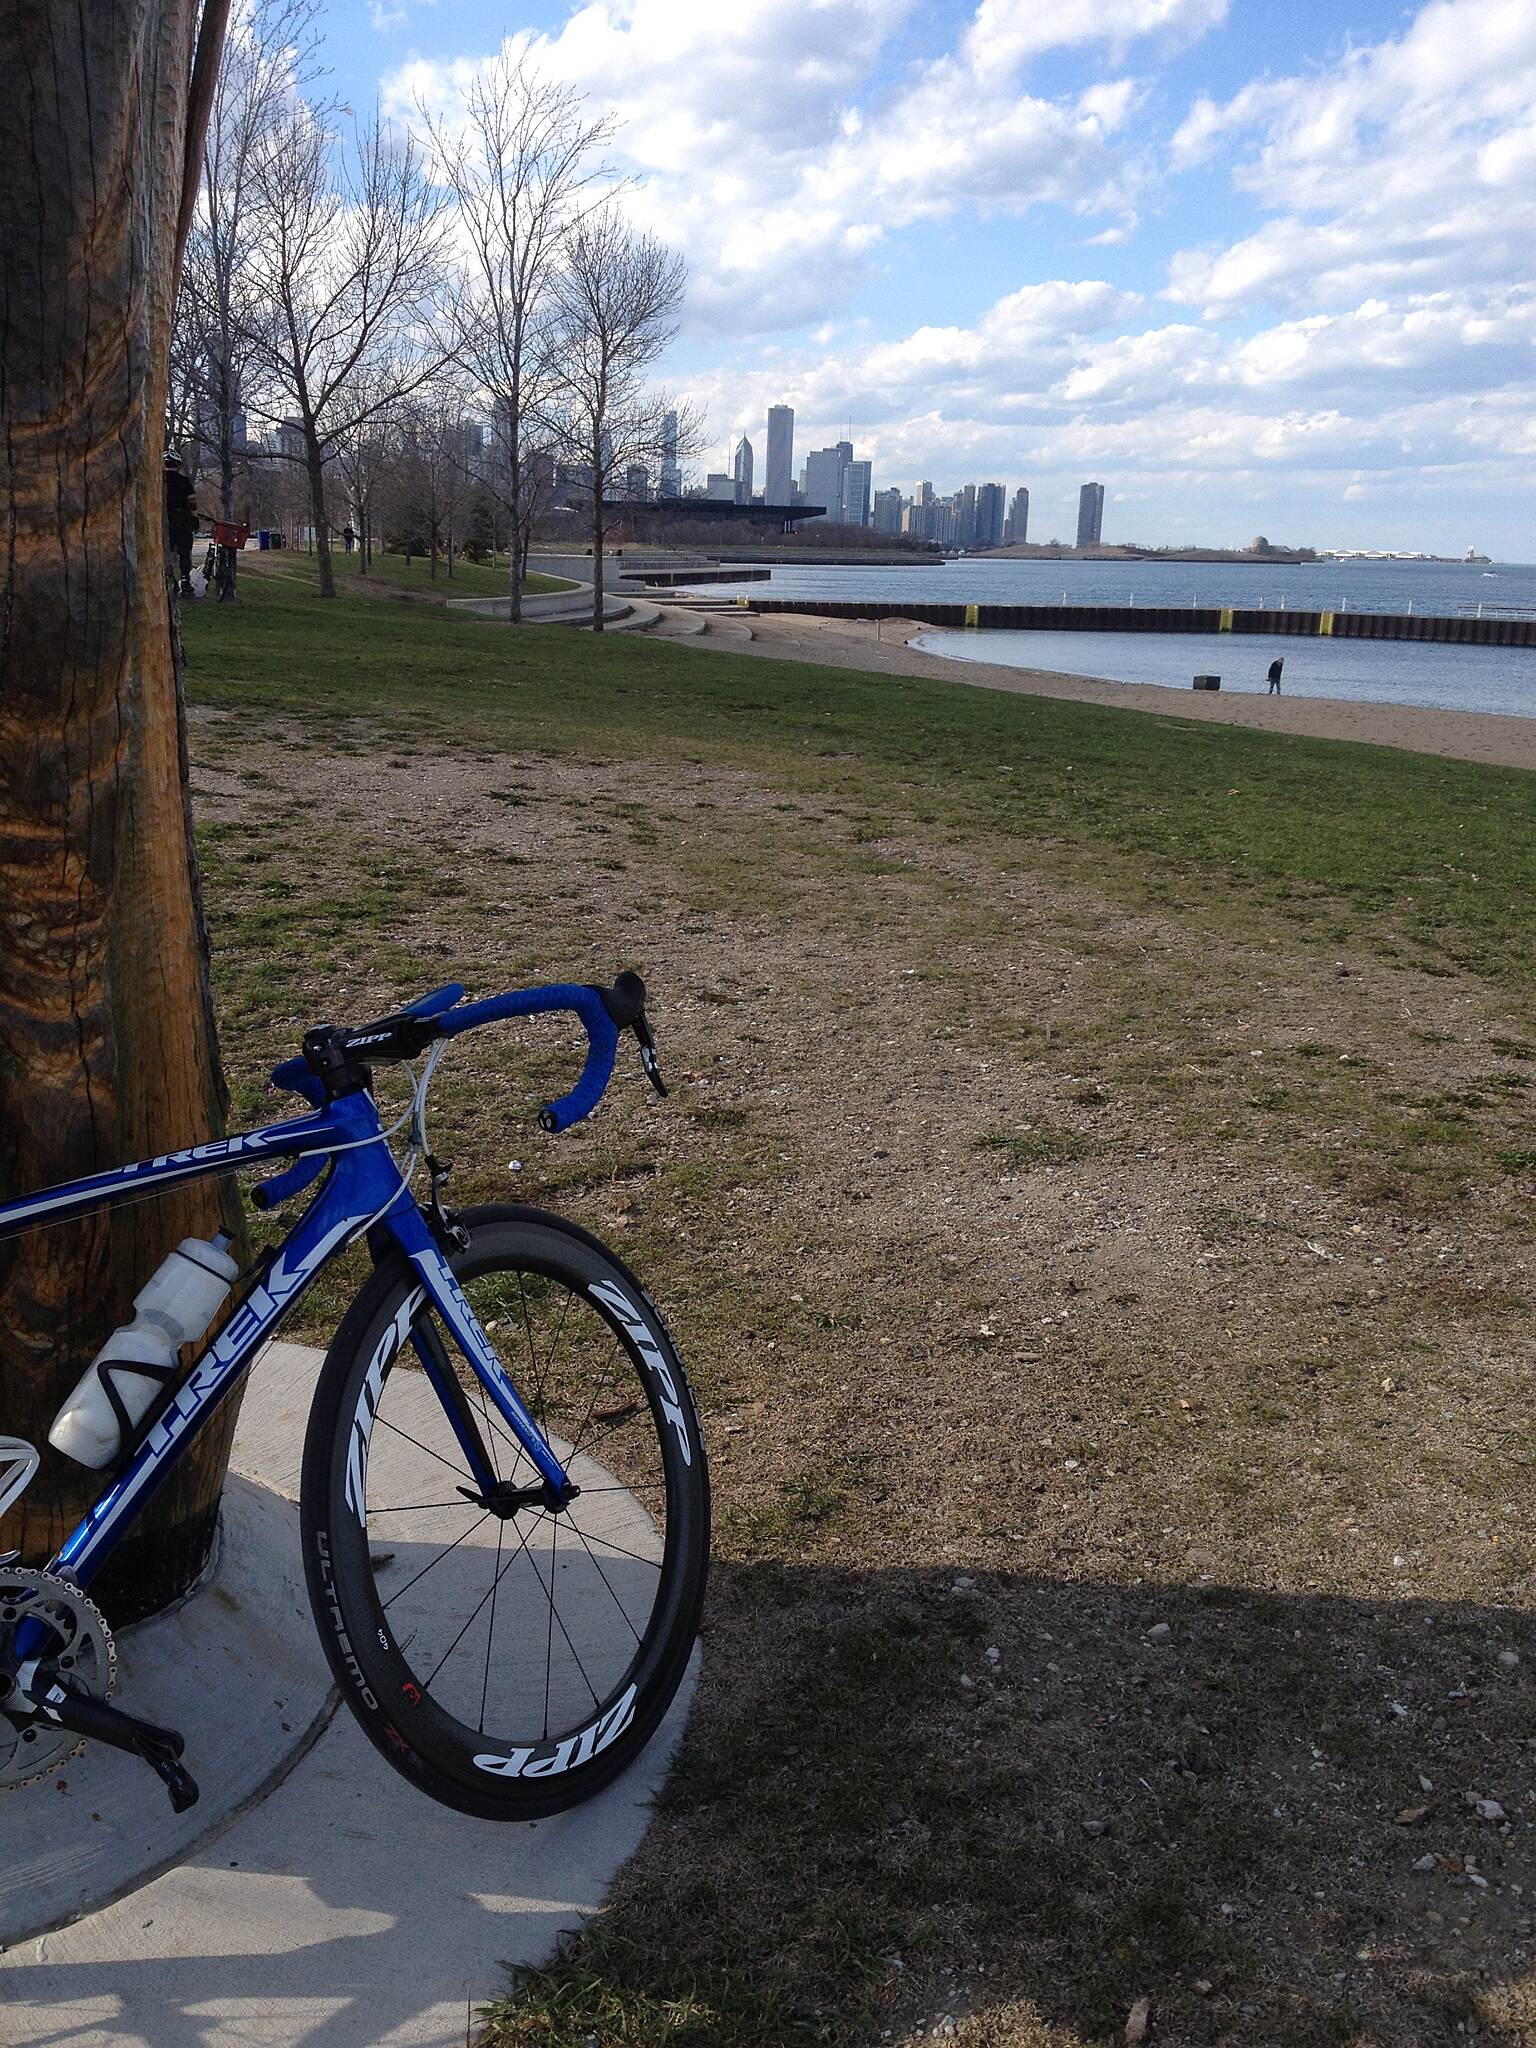 Chicago Lakefront Trail Gazing upon the Cityscape Taking a quick photo op before getting back on the bike to dance on the pedals.